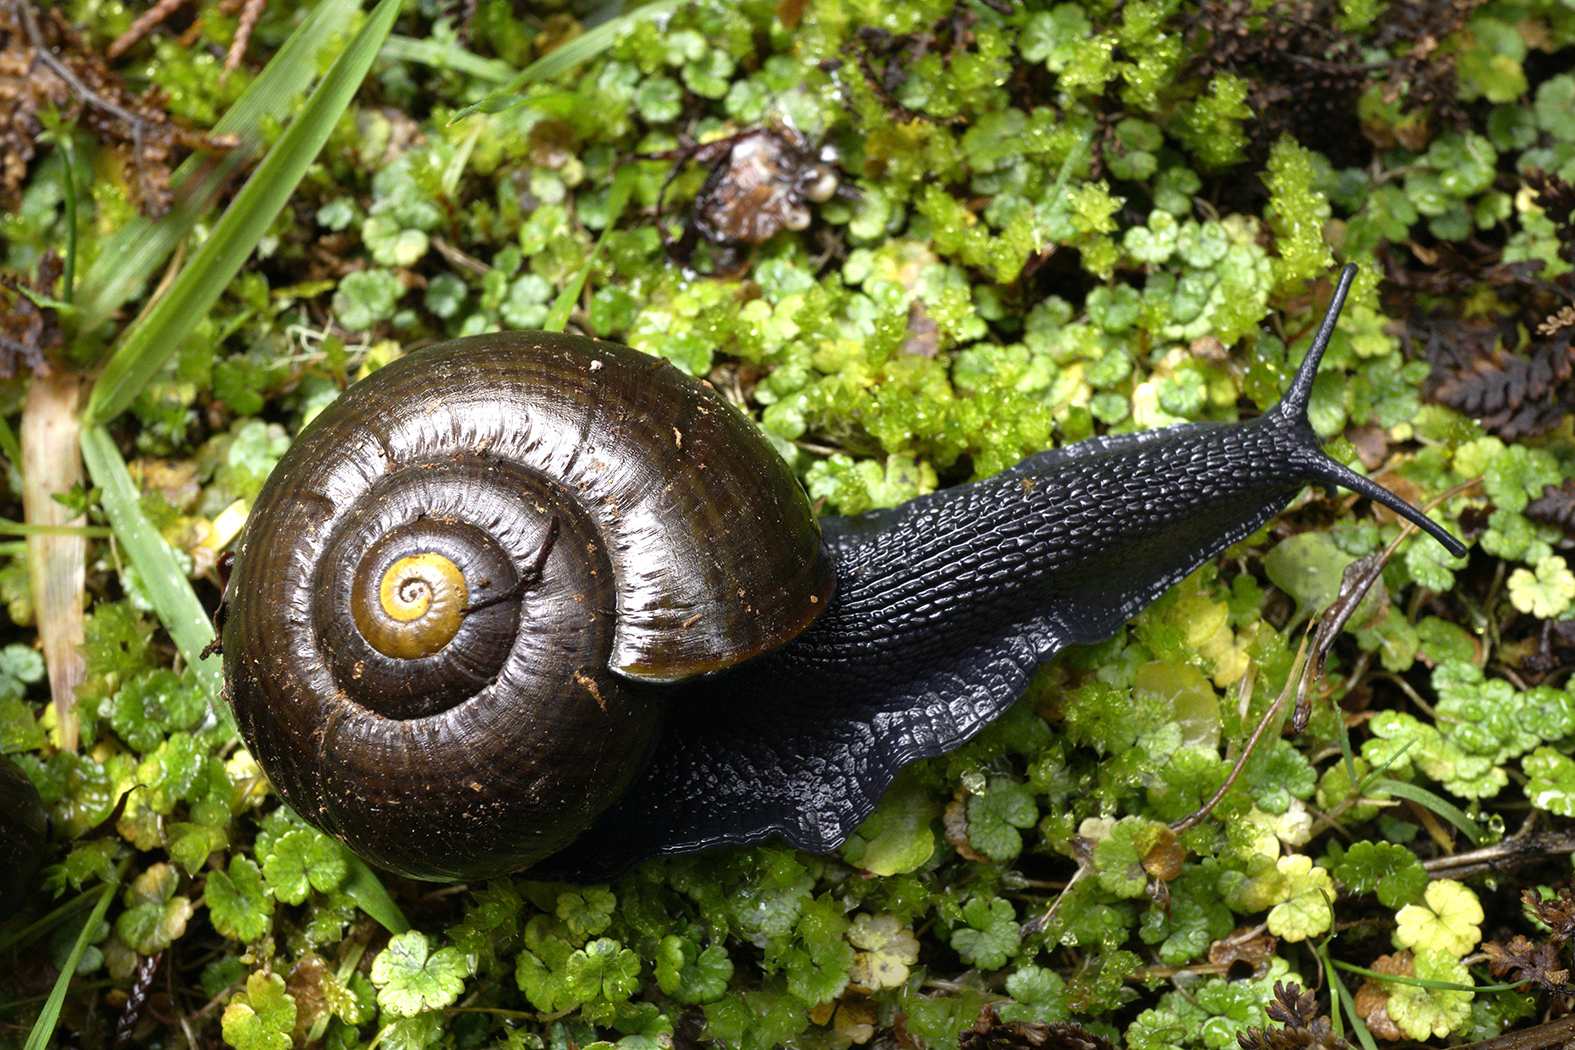 The great Northern Ruahines snail hunt